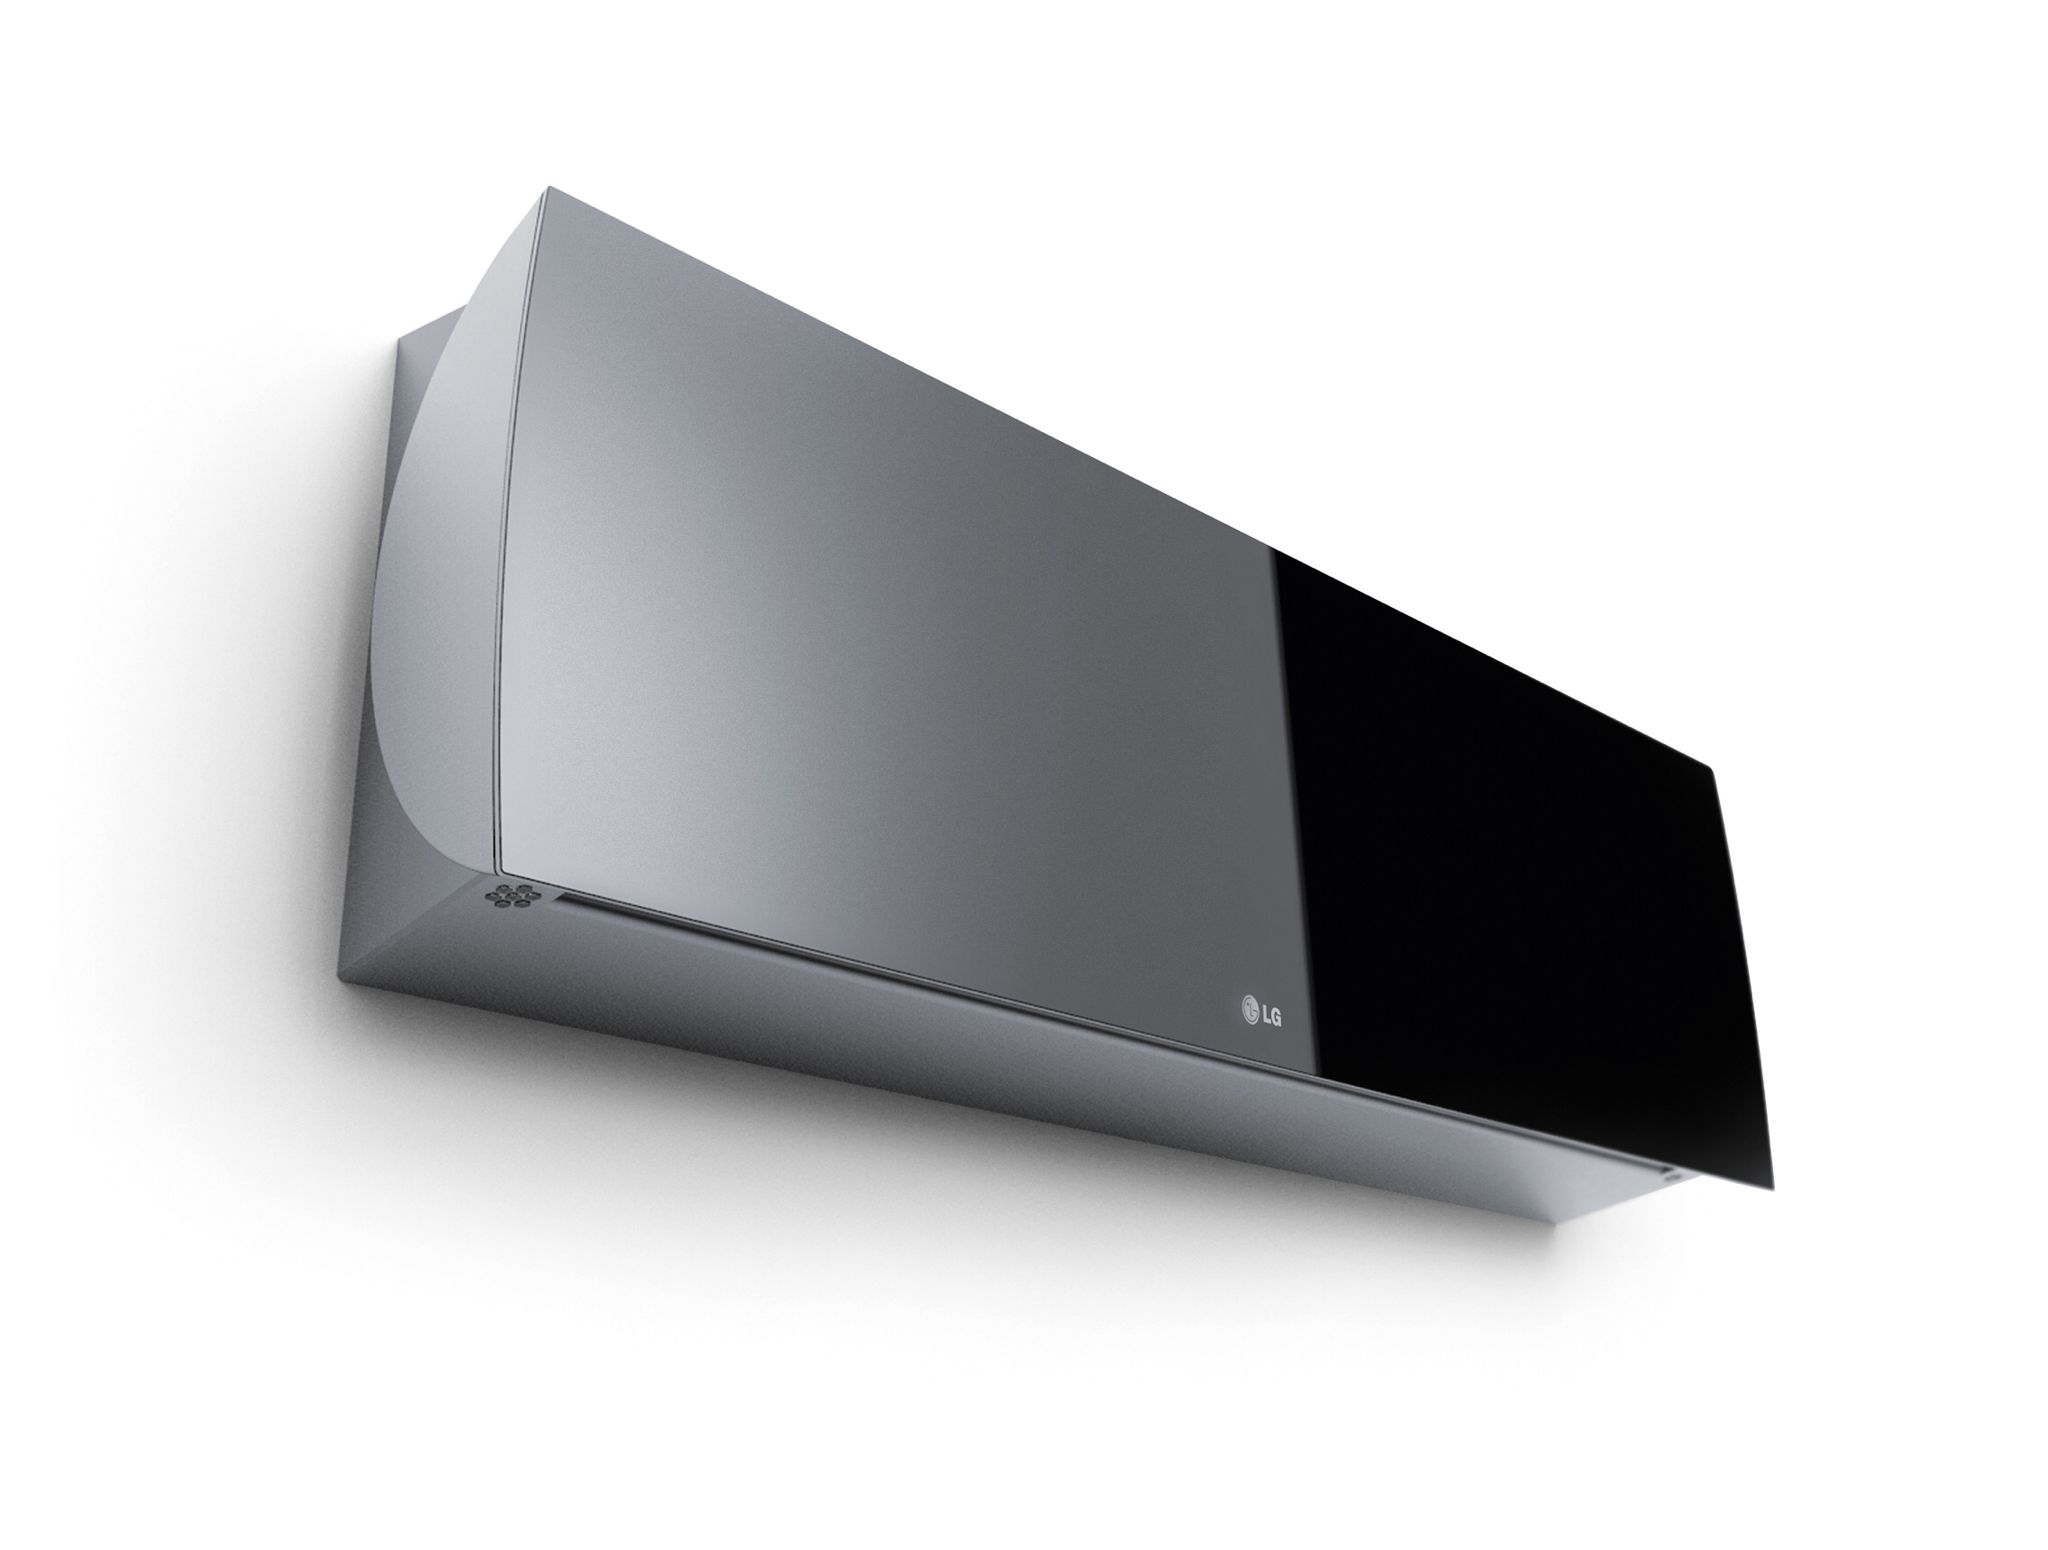 Artcool Slim Air Conditioner Manufacturer Lg Electronics Inc